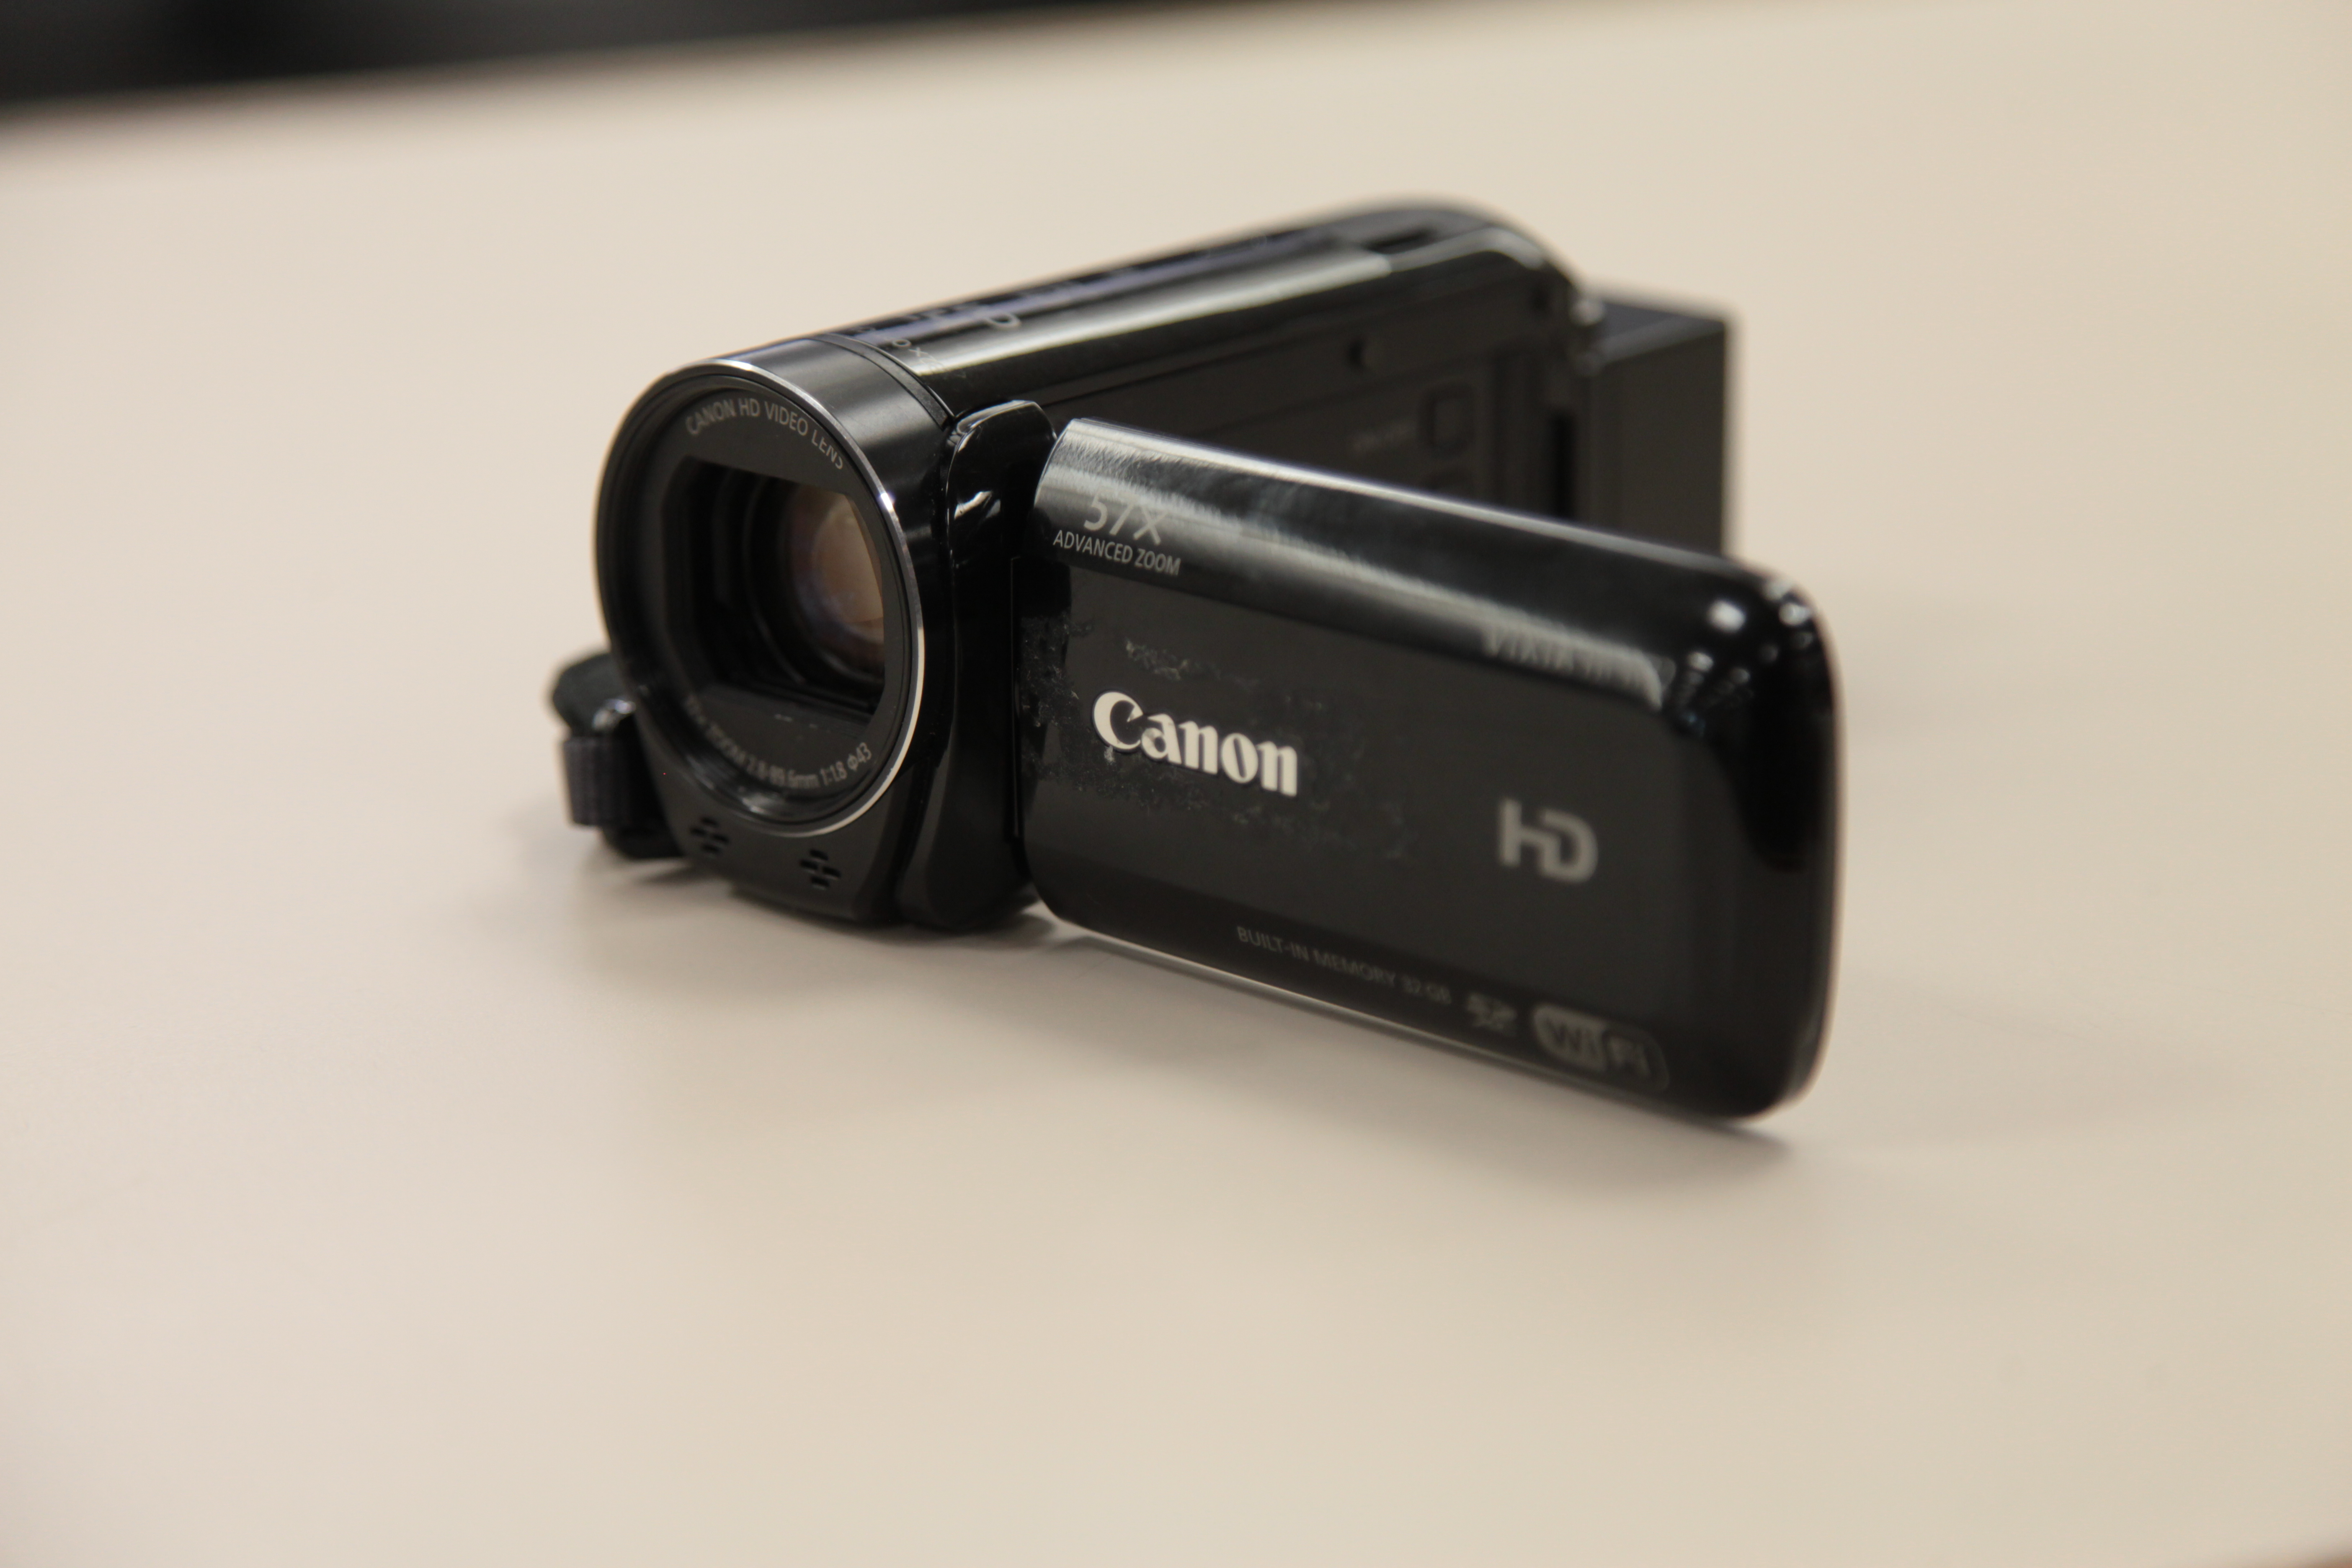 Canon Vixia video camera on a counter